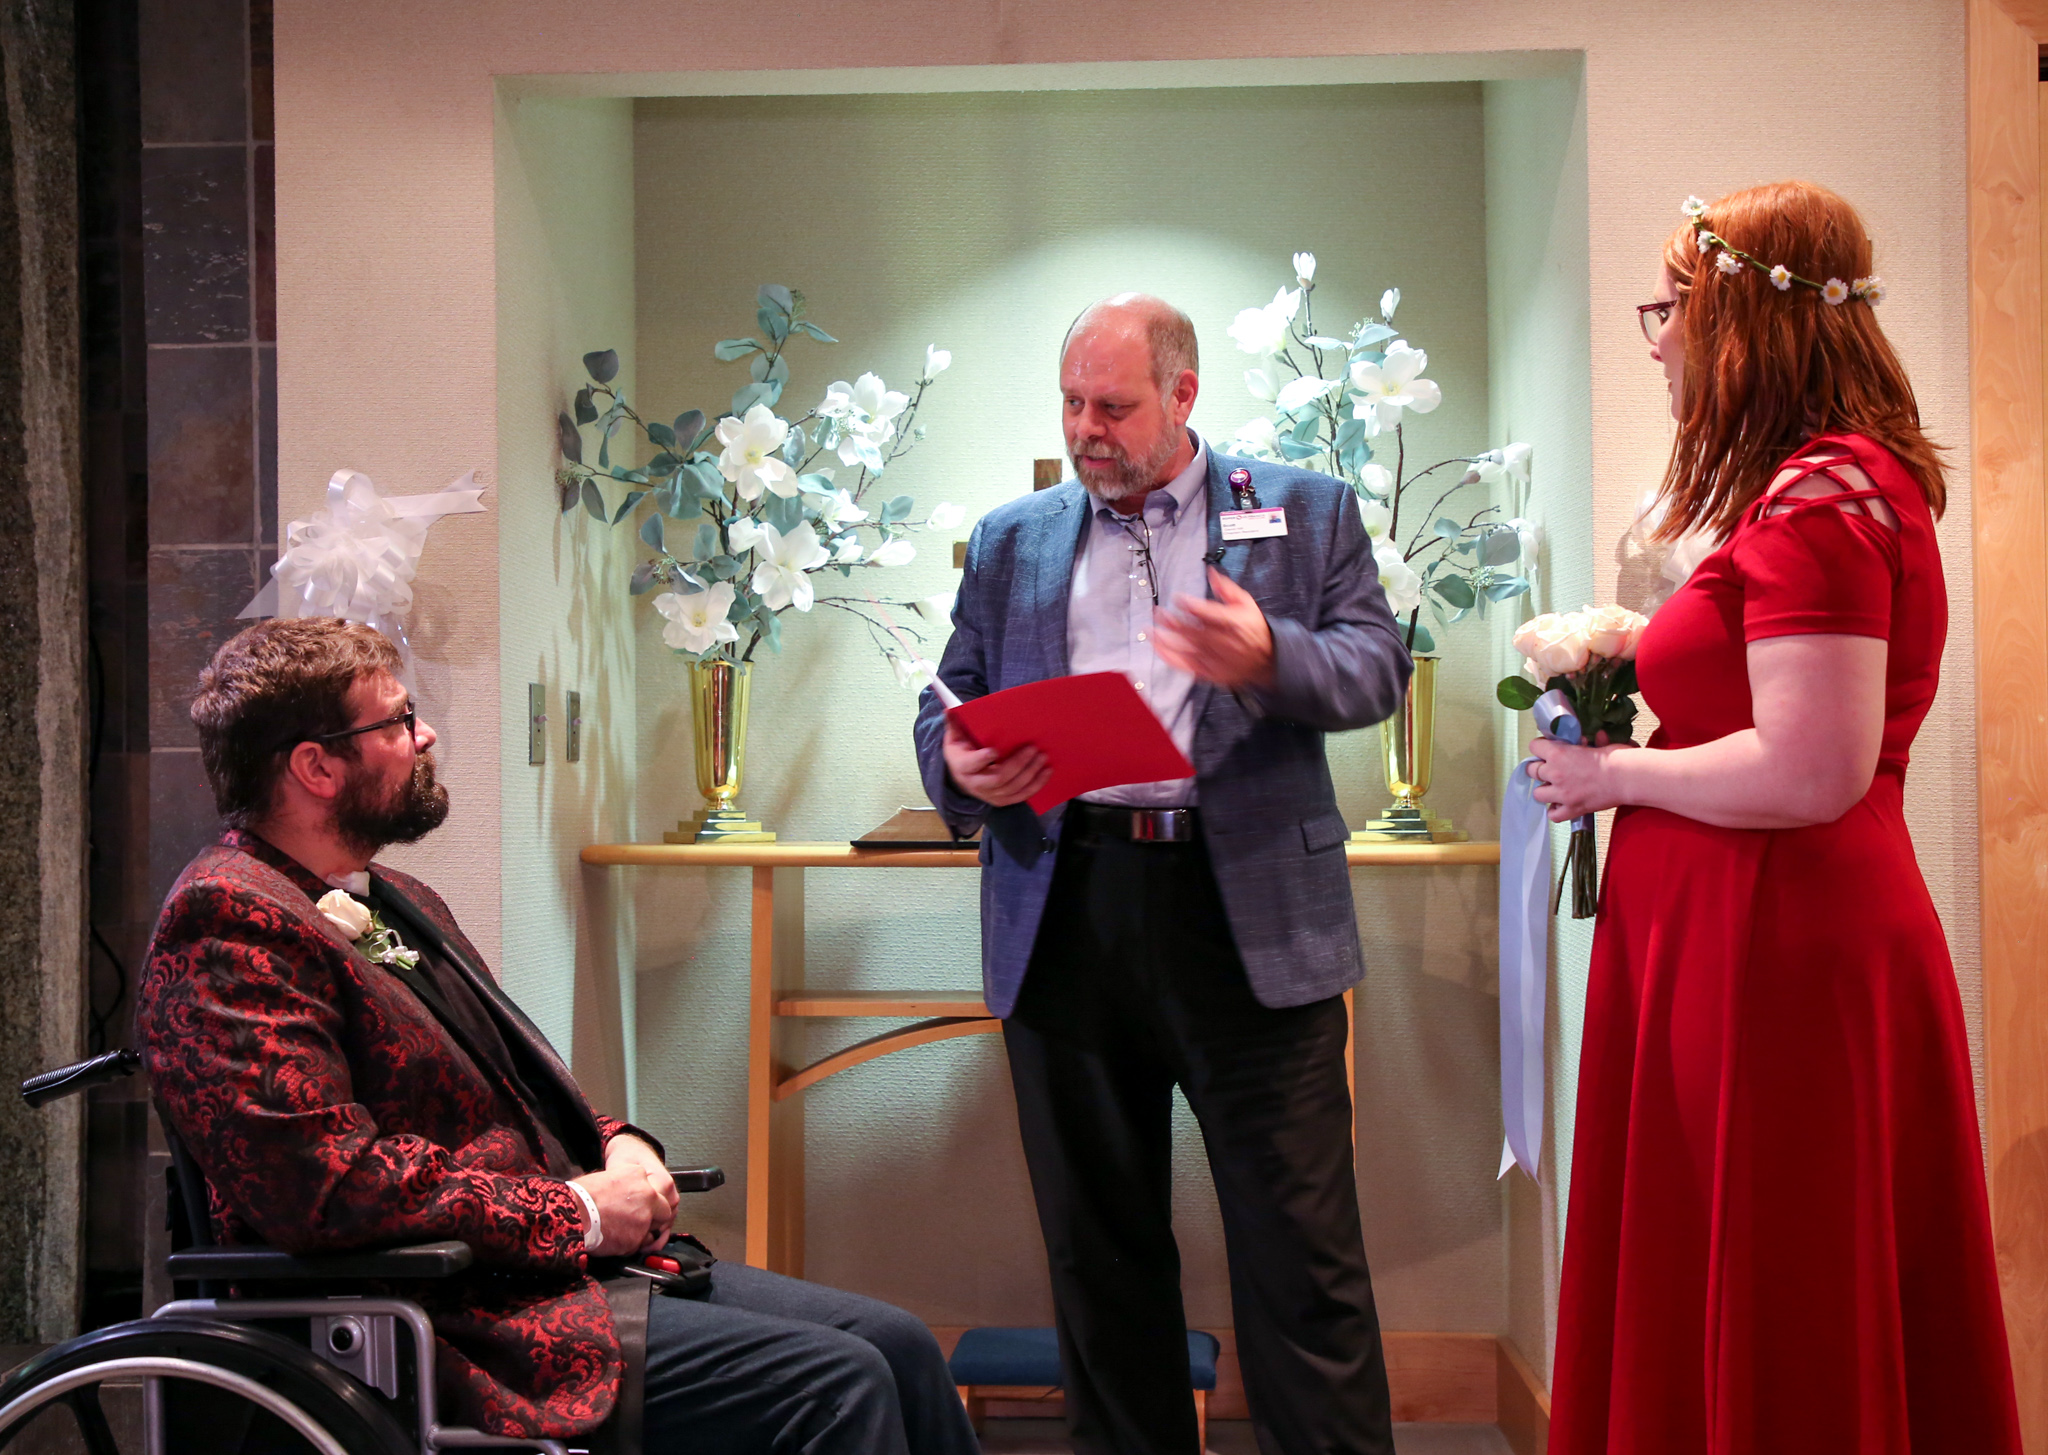 Andrew, Mariah and officiant